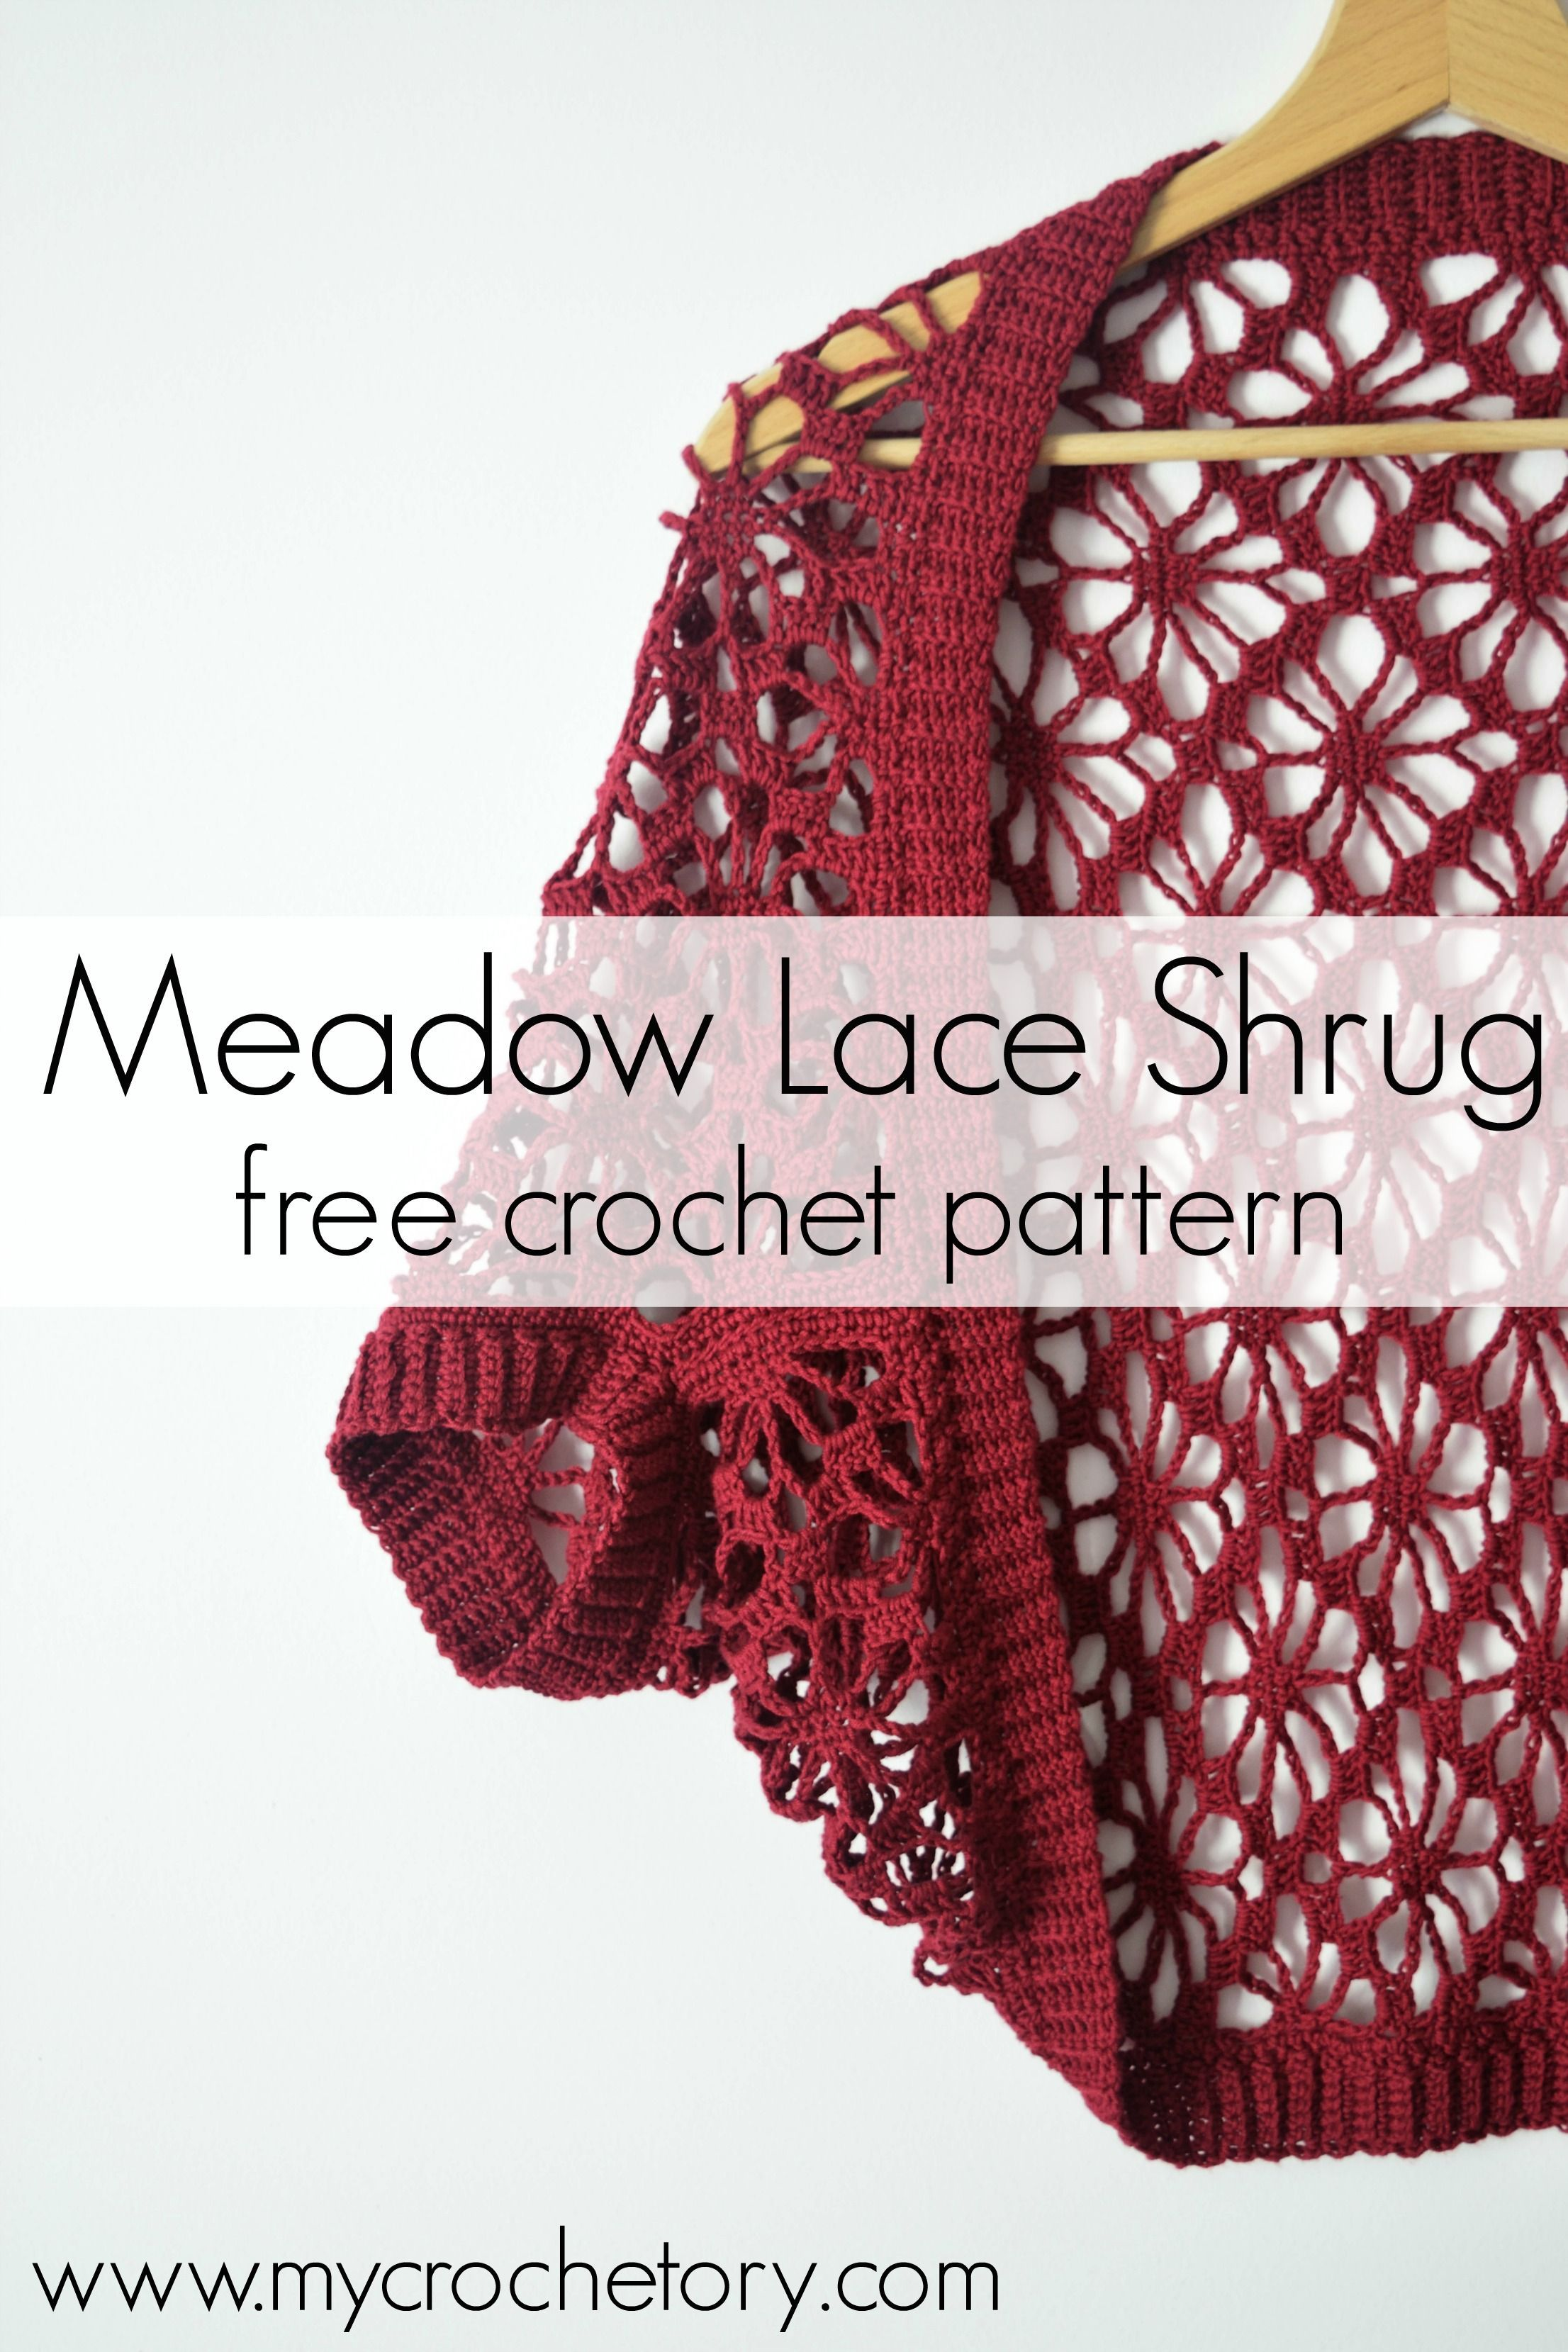 Meadow Lace Shrug free crochet pattern - Mycrochetory #crochetclothes